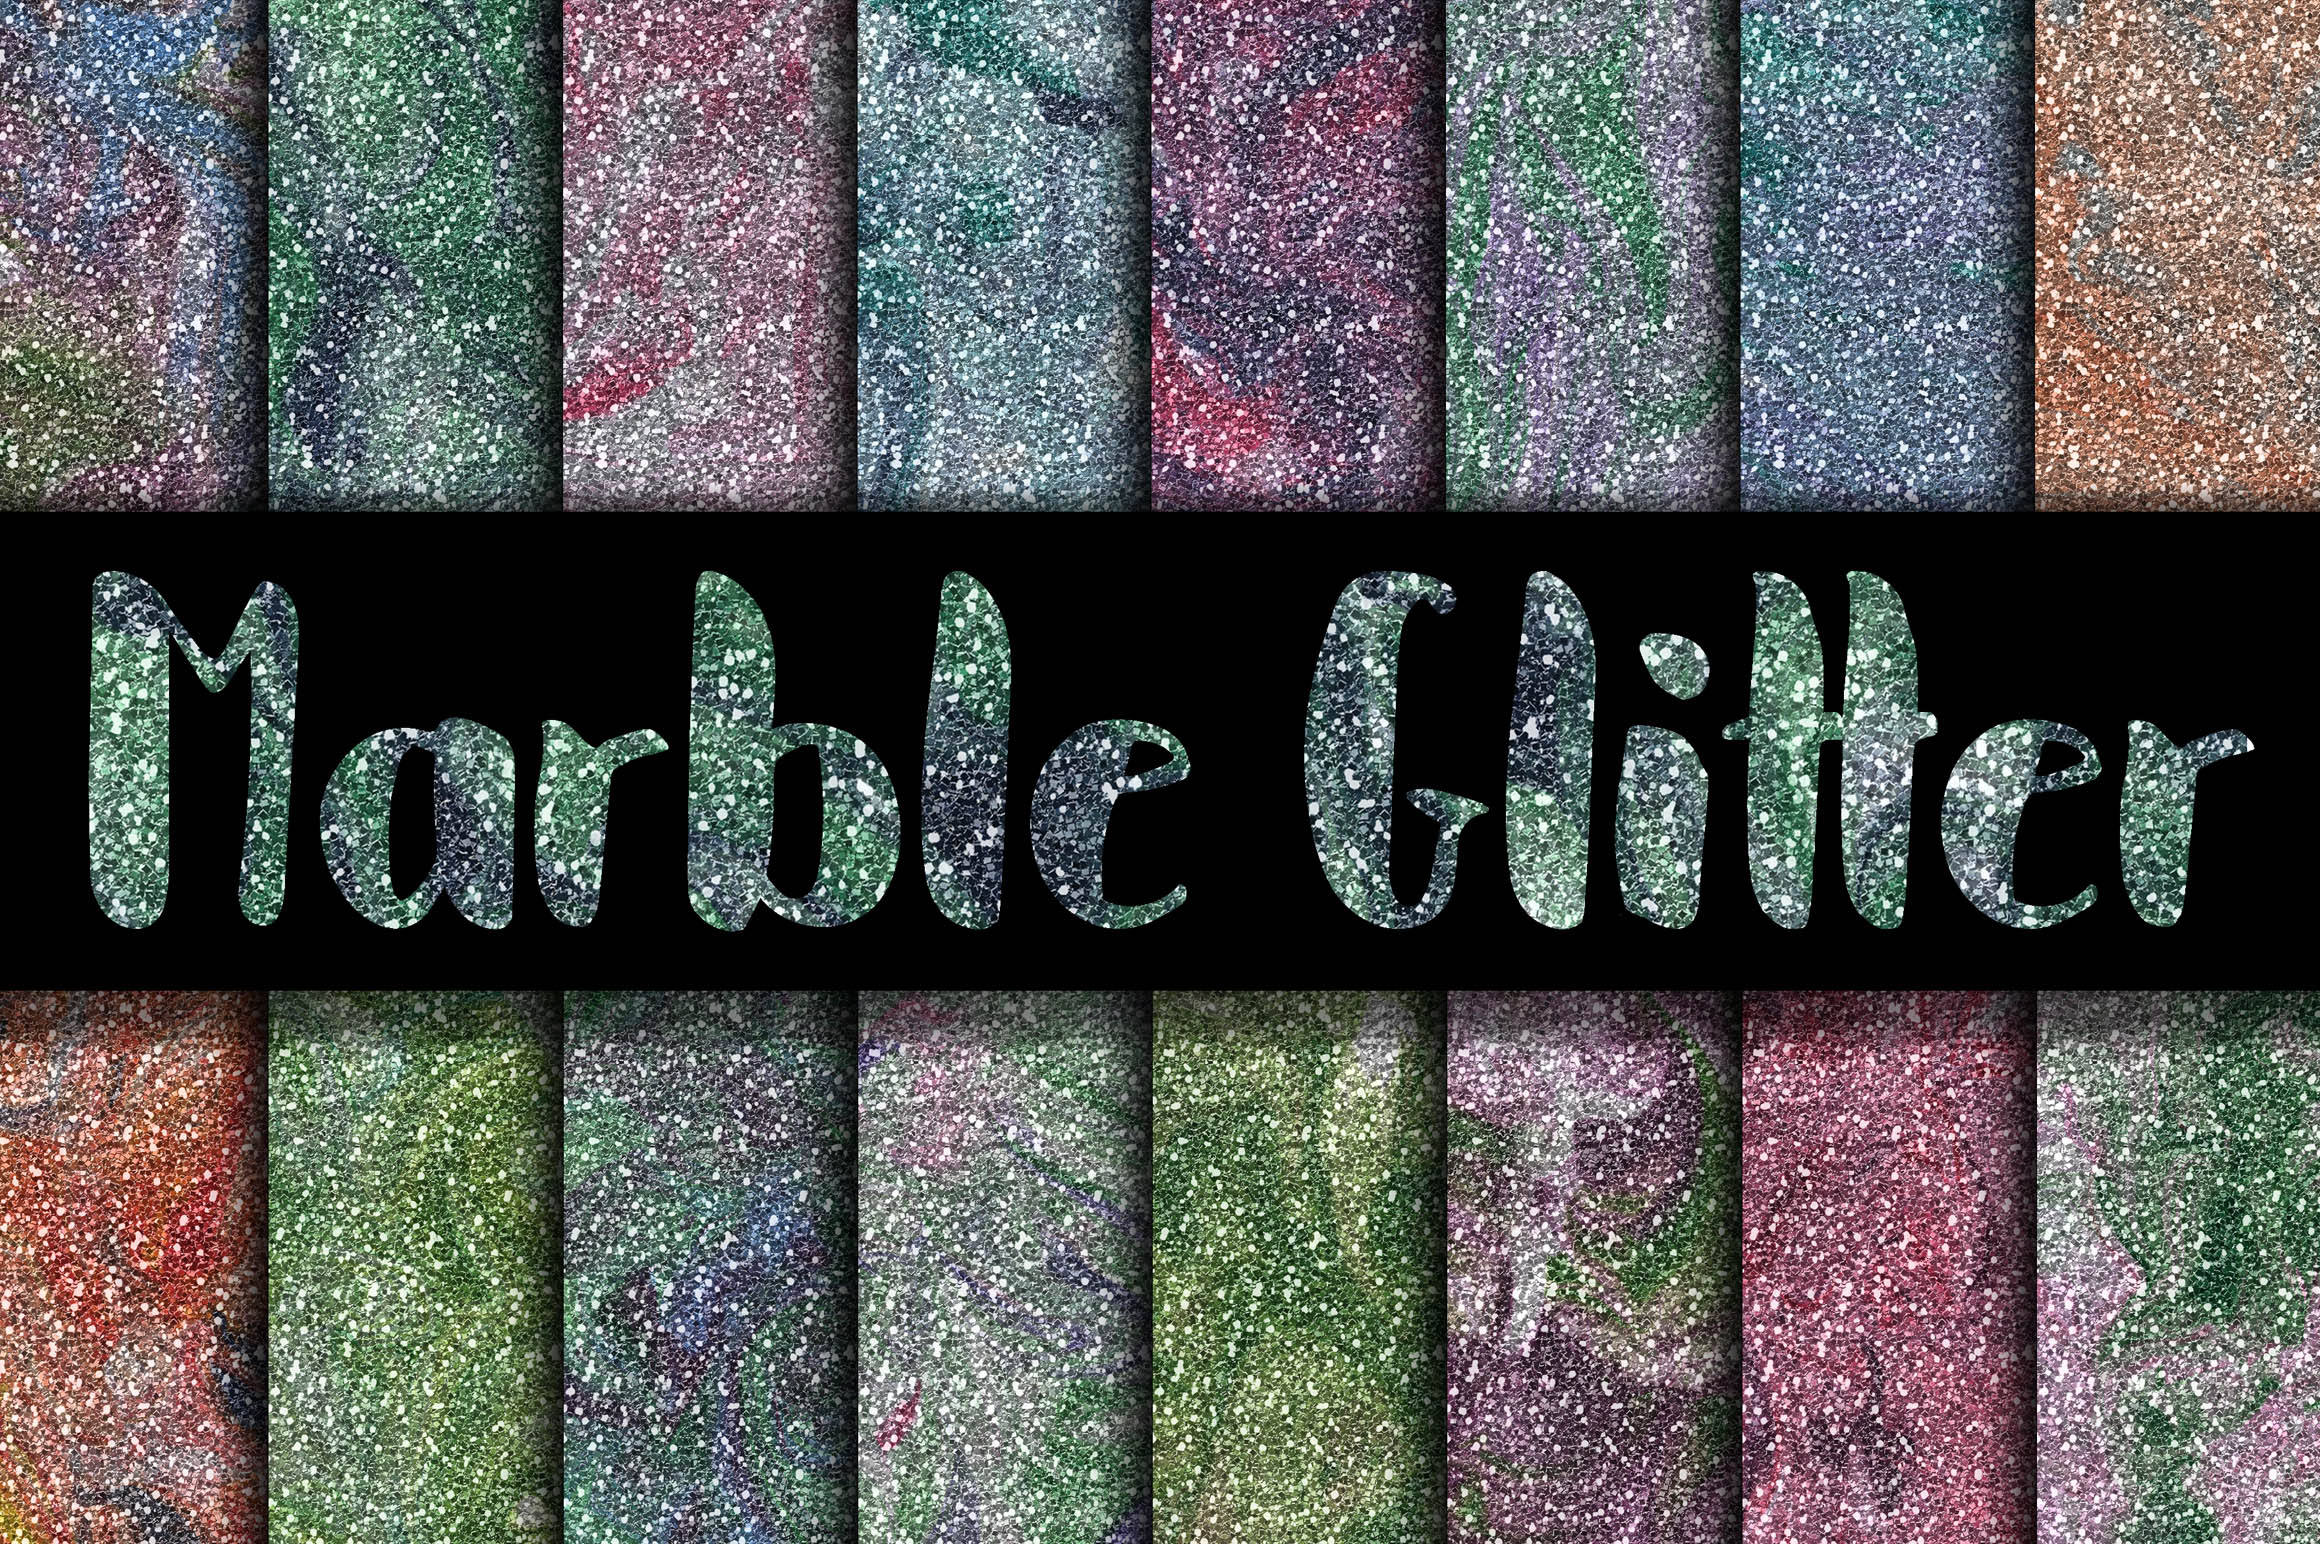 Marble Glitter Digital Paper Textures Graphic By oldmarketdesigns